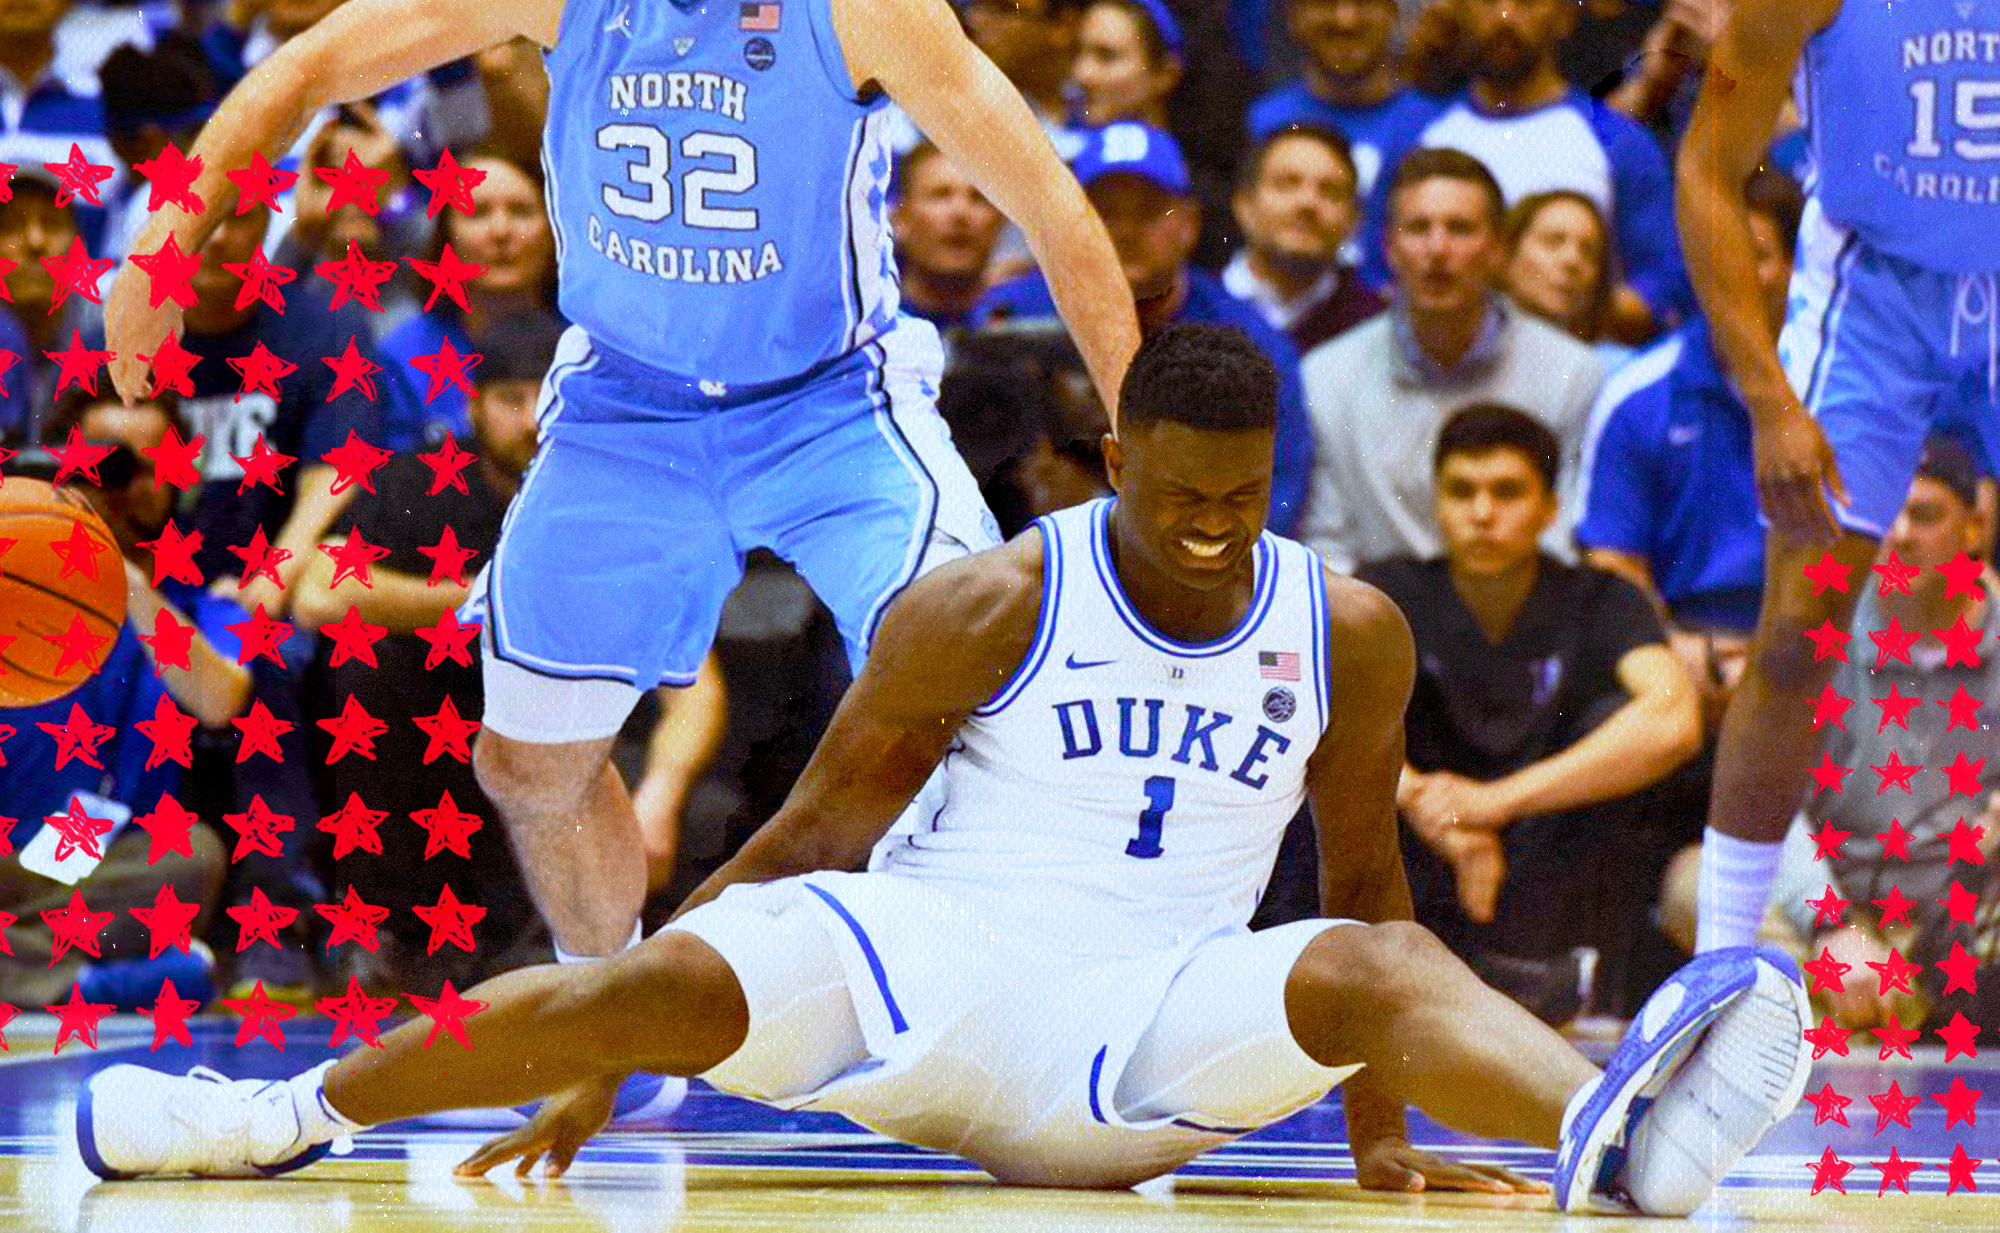 Zion Williamson's injury should change the way we talk about sports